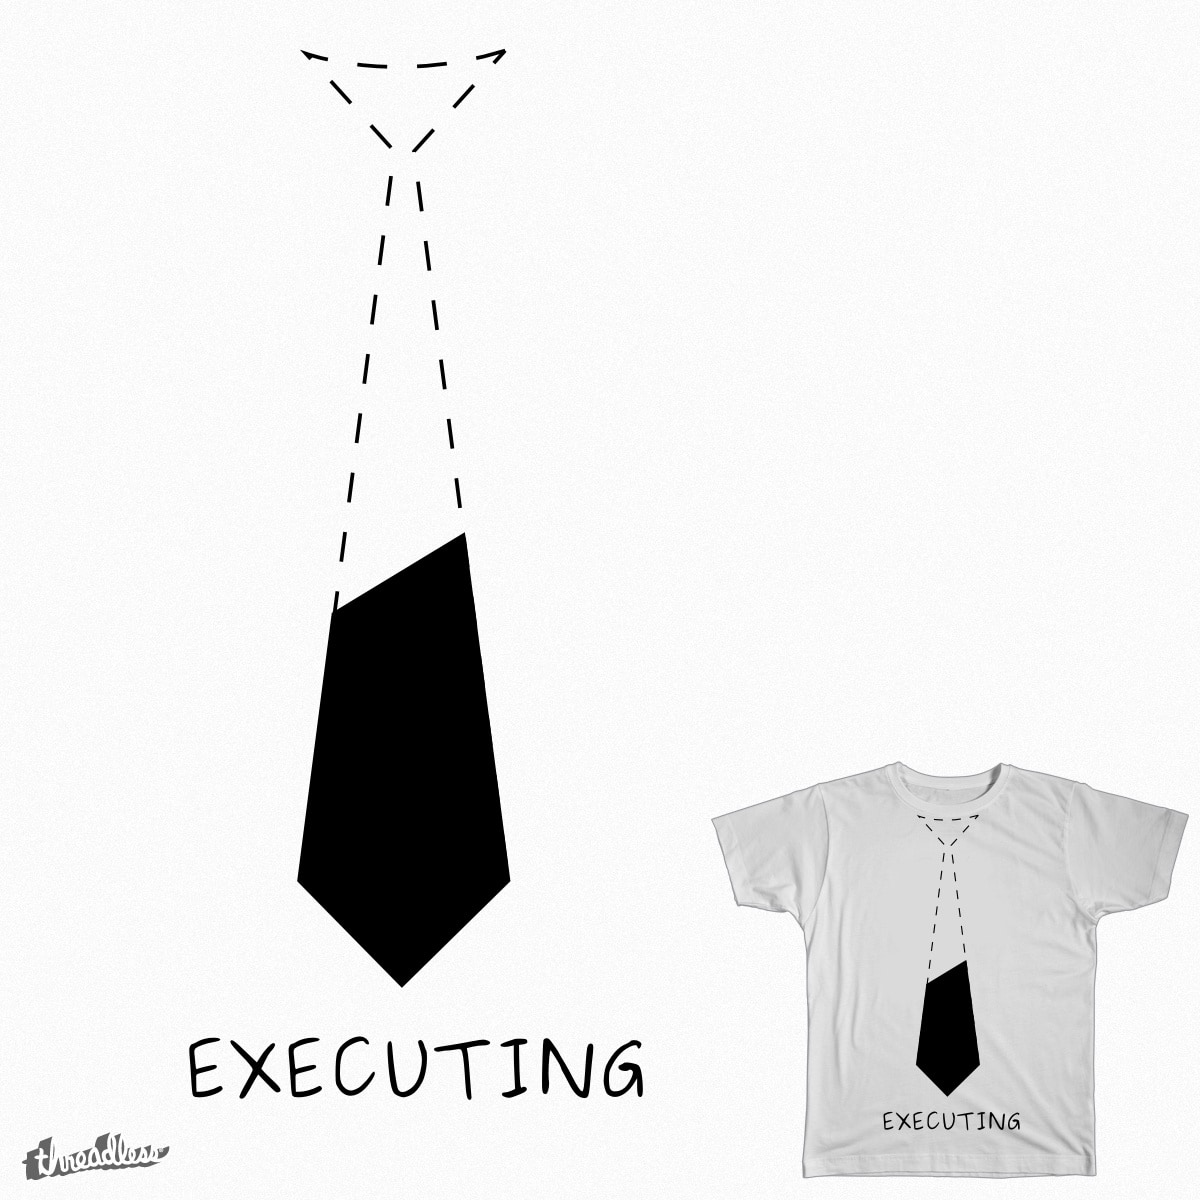 Entrepreneur in Execution by theitoons on Threadless